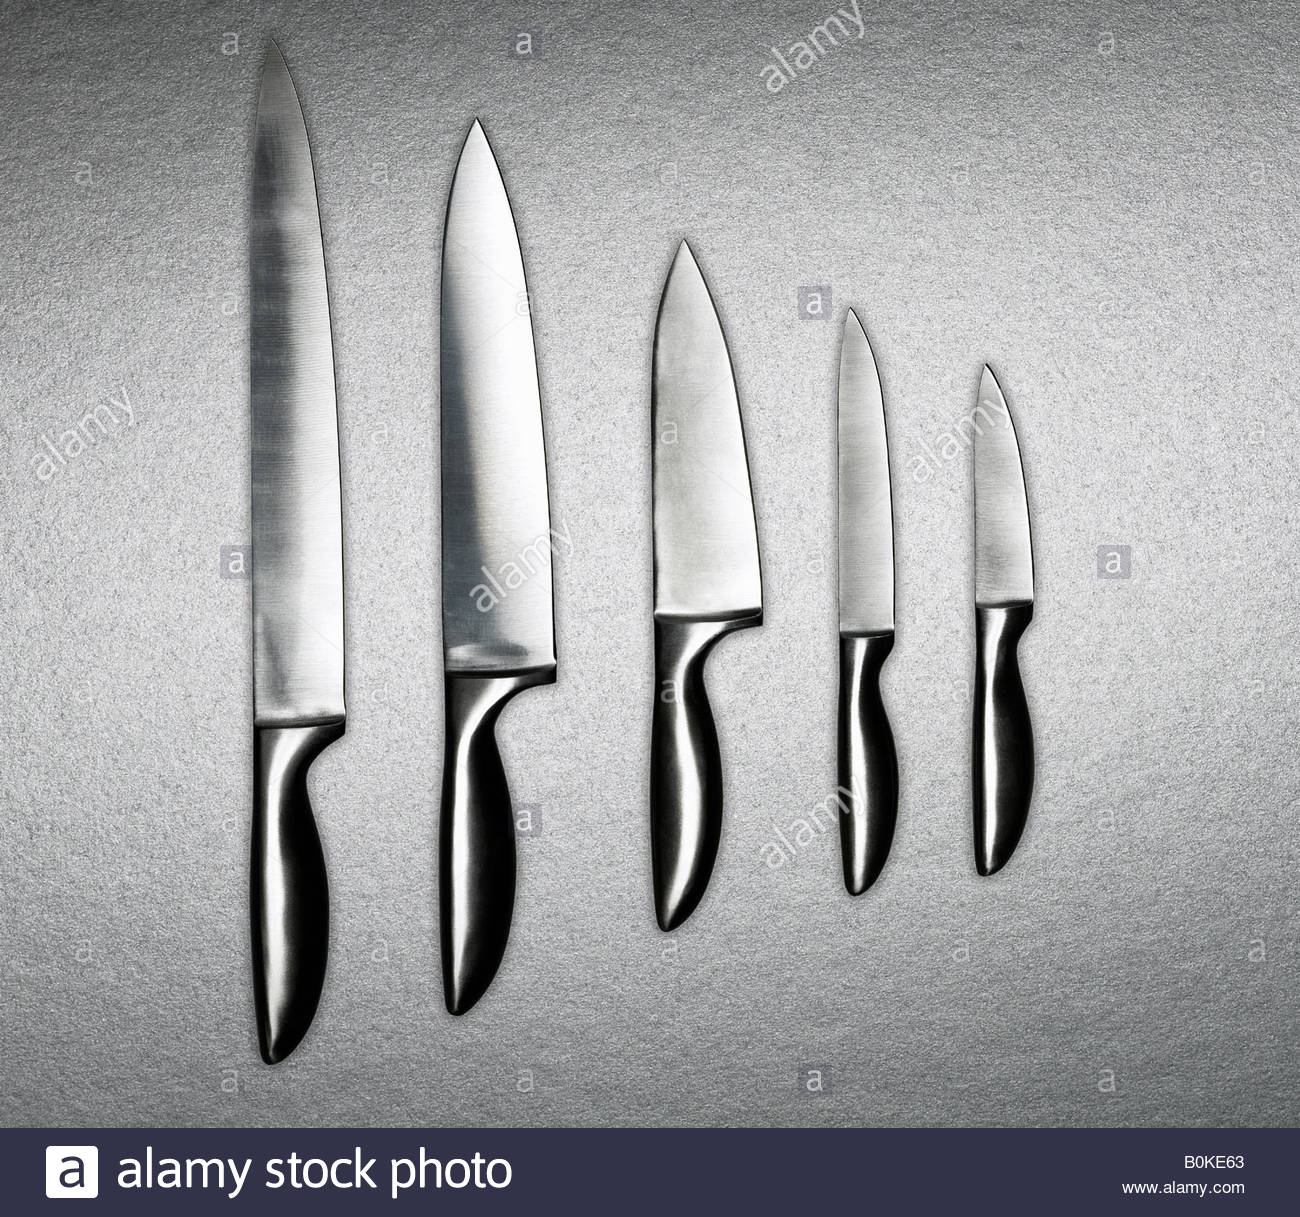 A variation of silver knives in a row - Stock Image